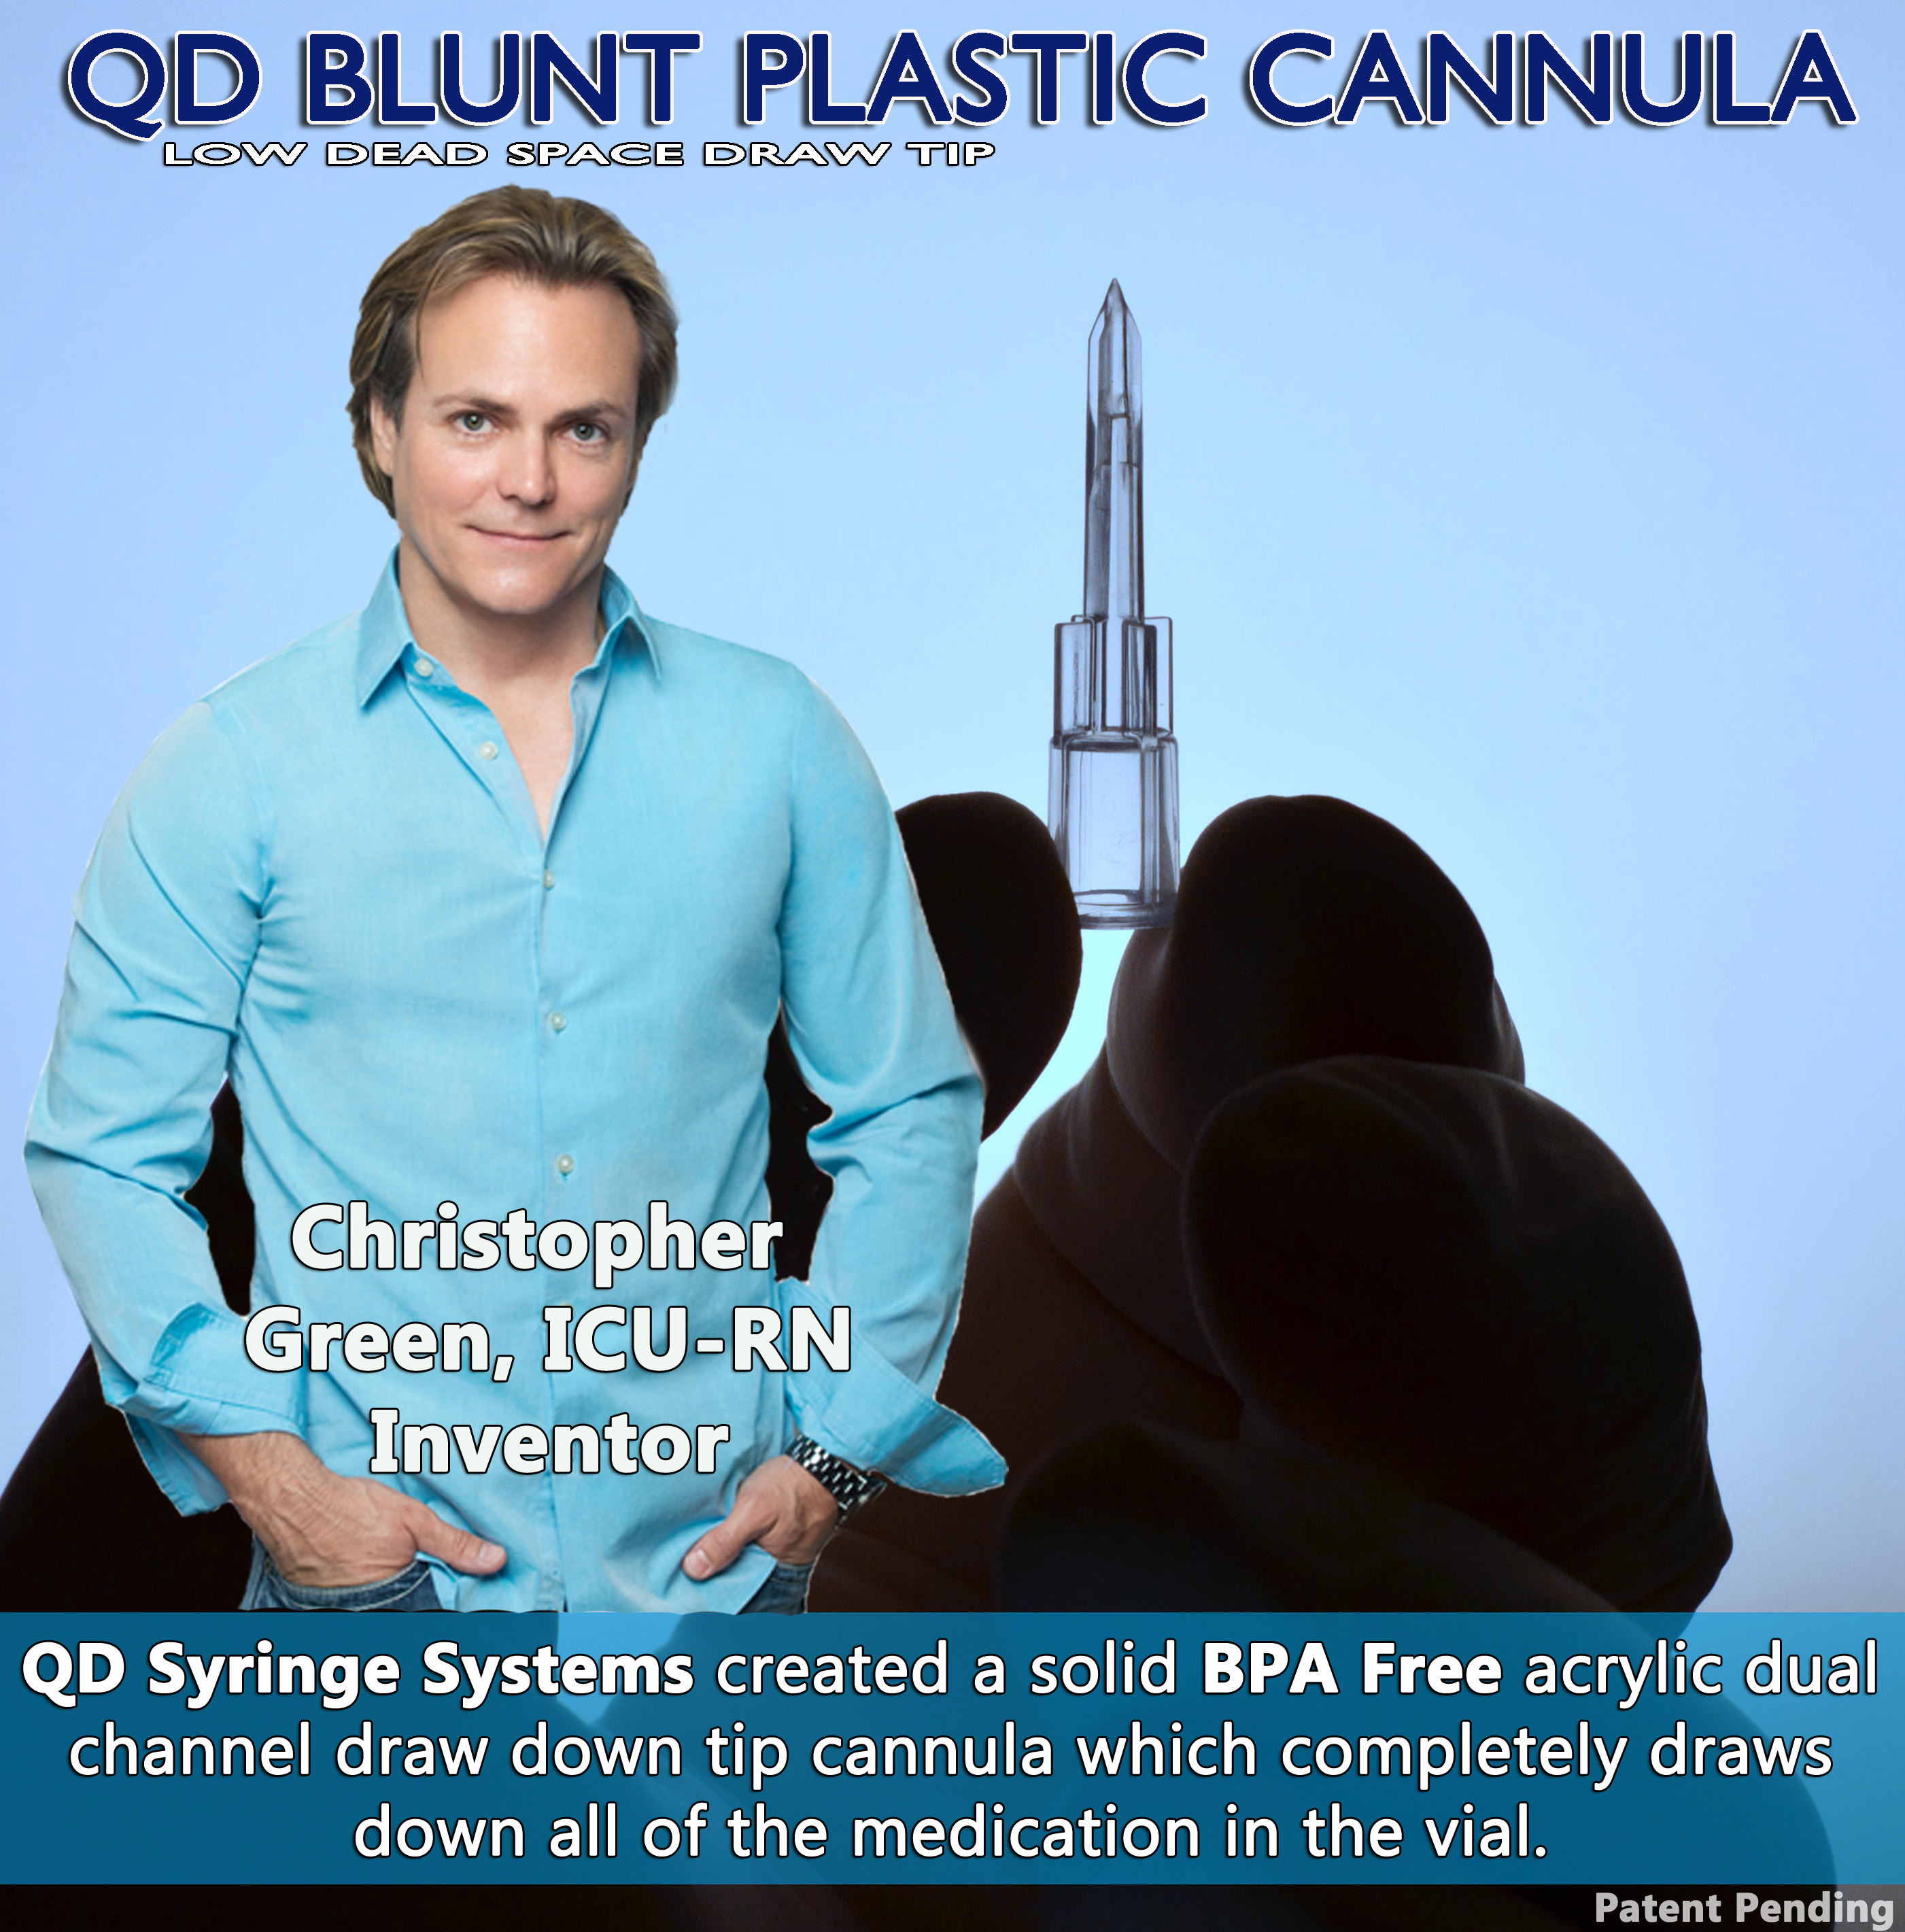 QD Blunt Plastic Cannula with Chris Green Inventor 2